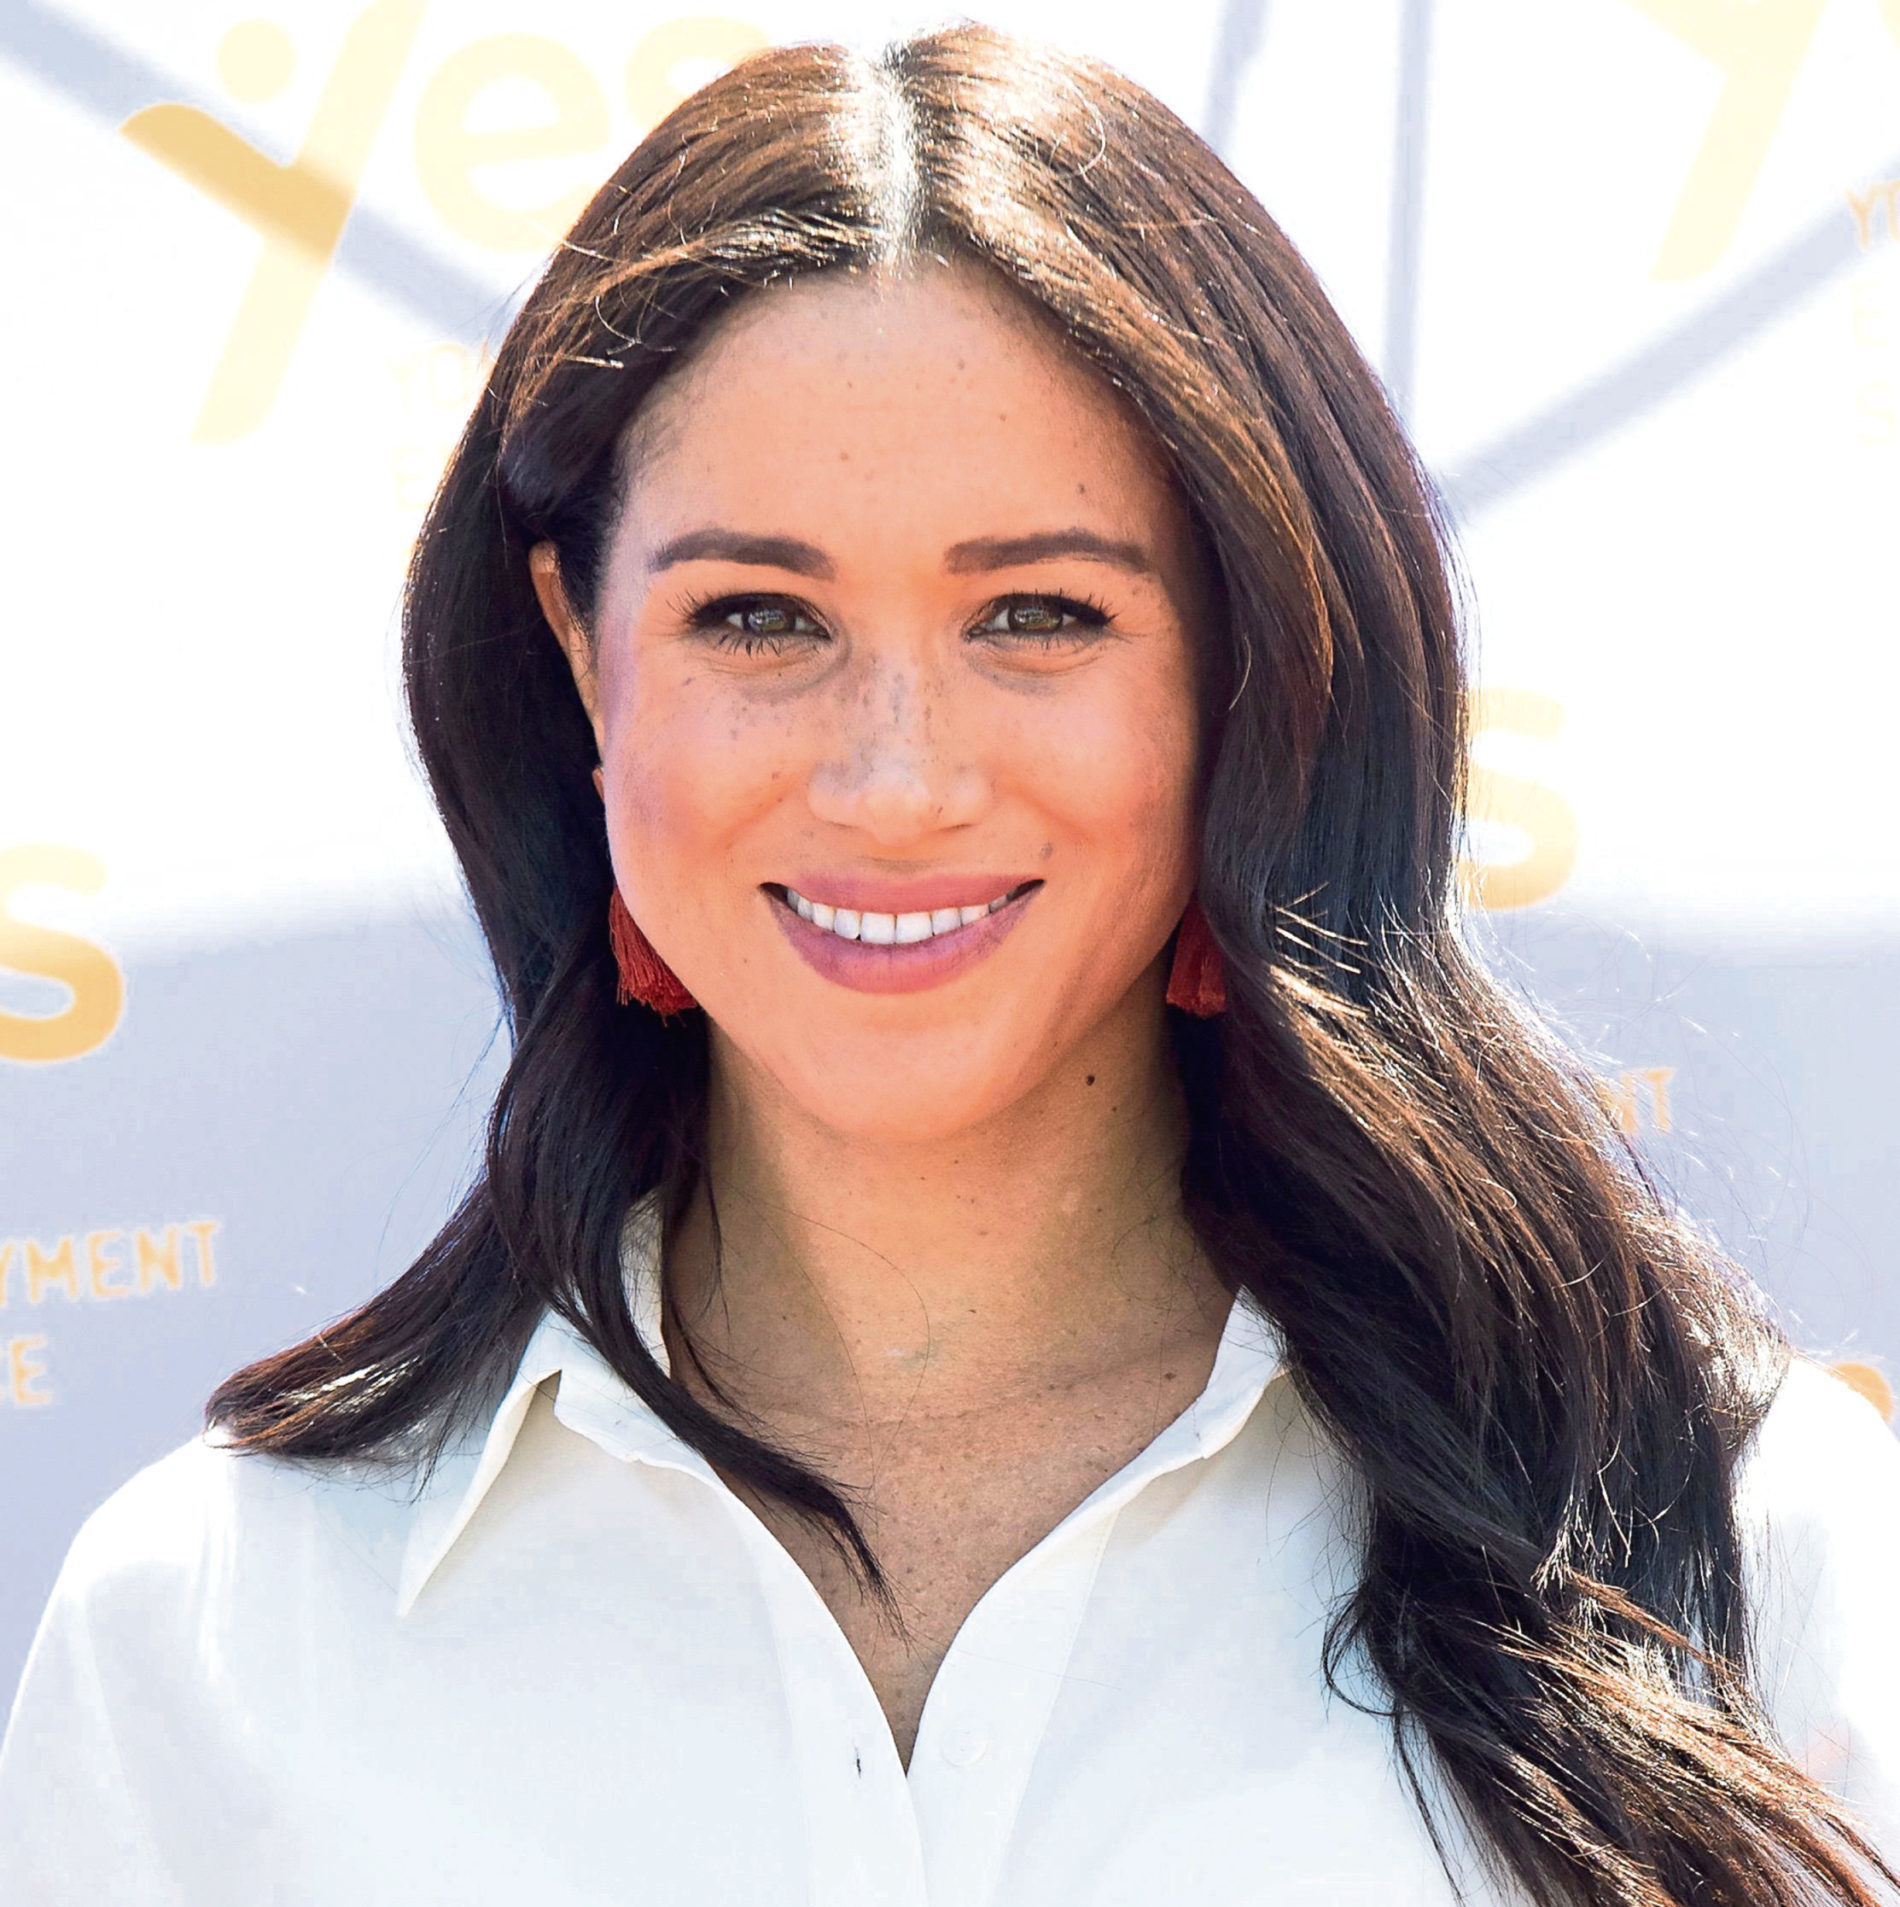 Taken to tusk: Meghan narrated a documentary about elephants